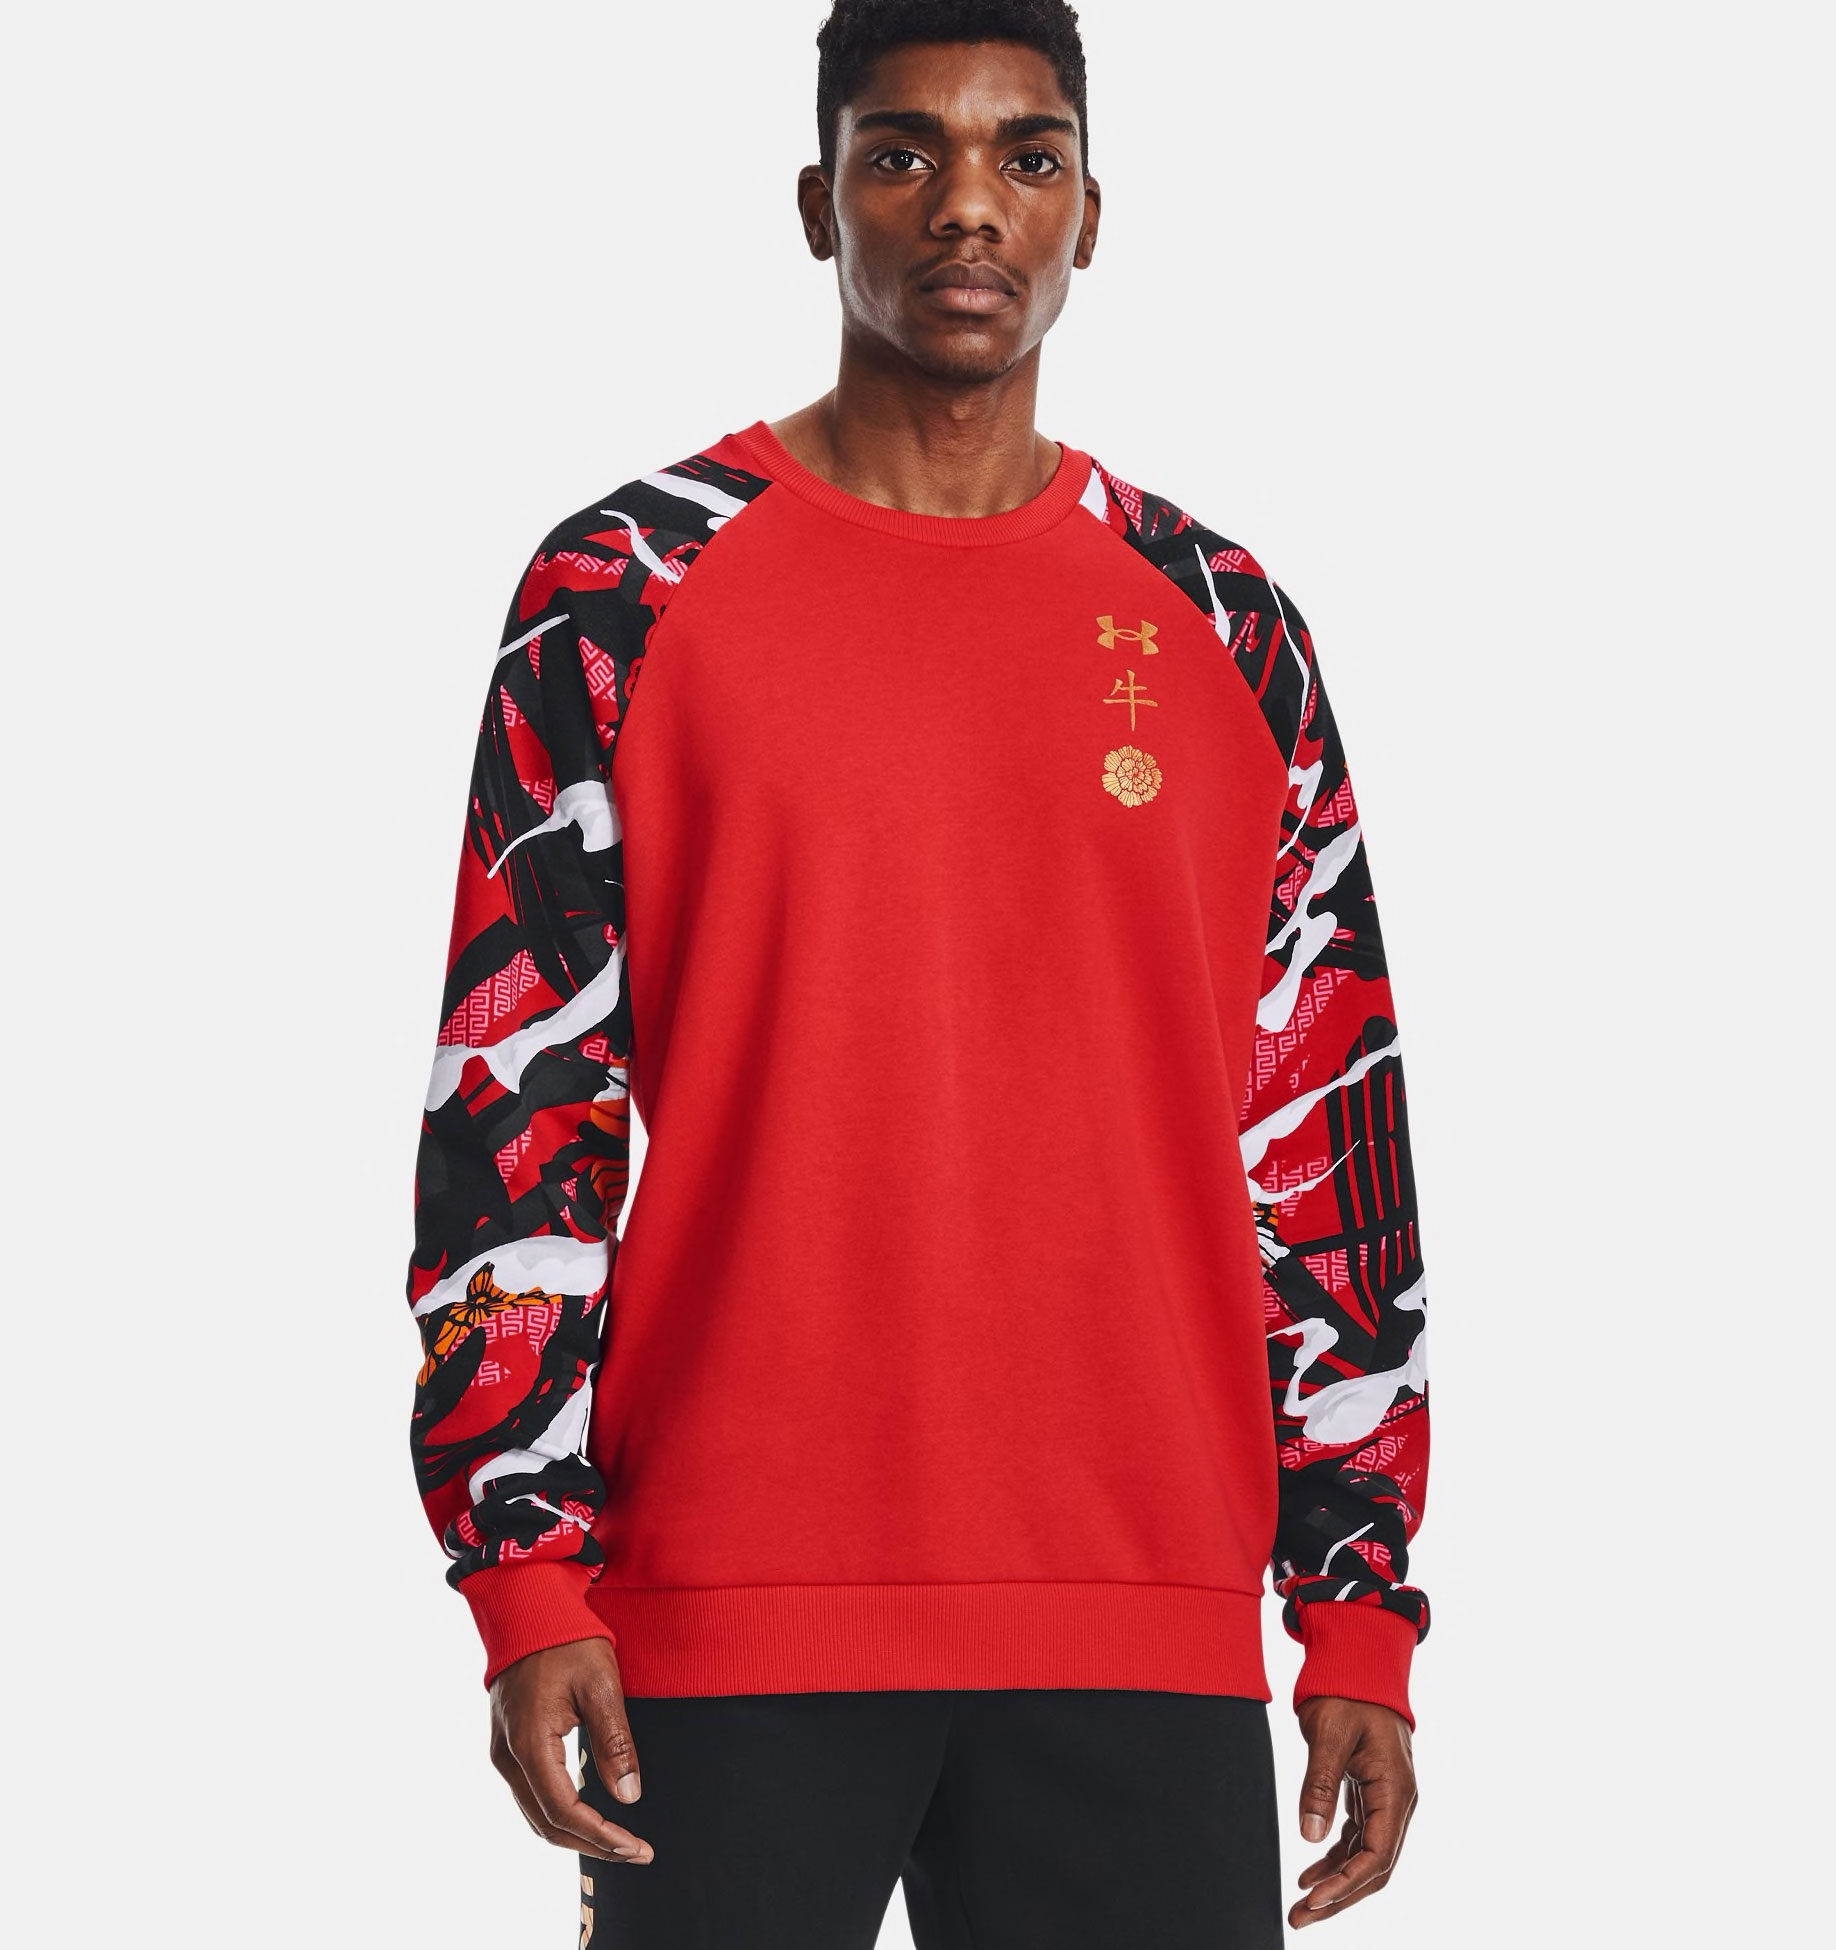 under-armour-chinese-new-year-curry-8-cny-sweatshirt